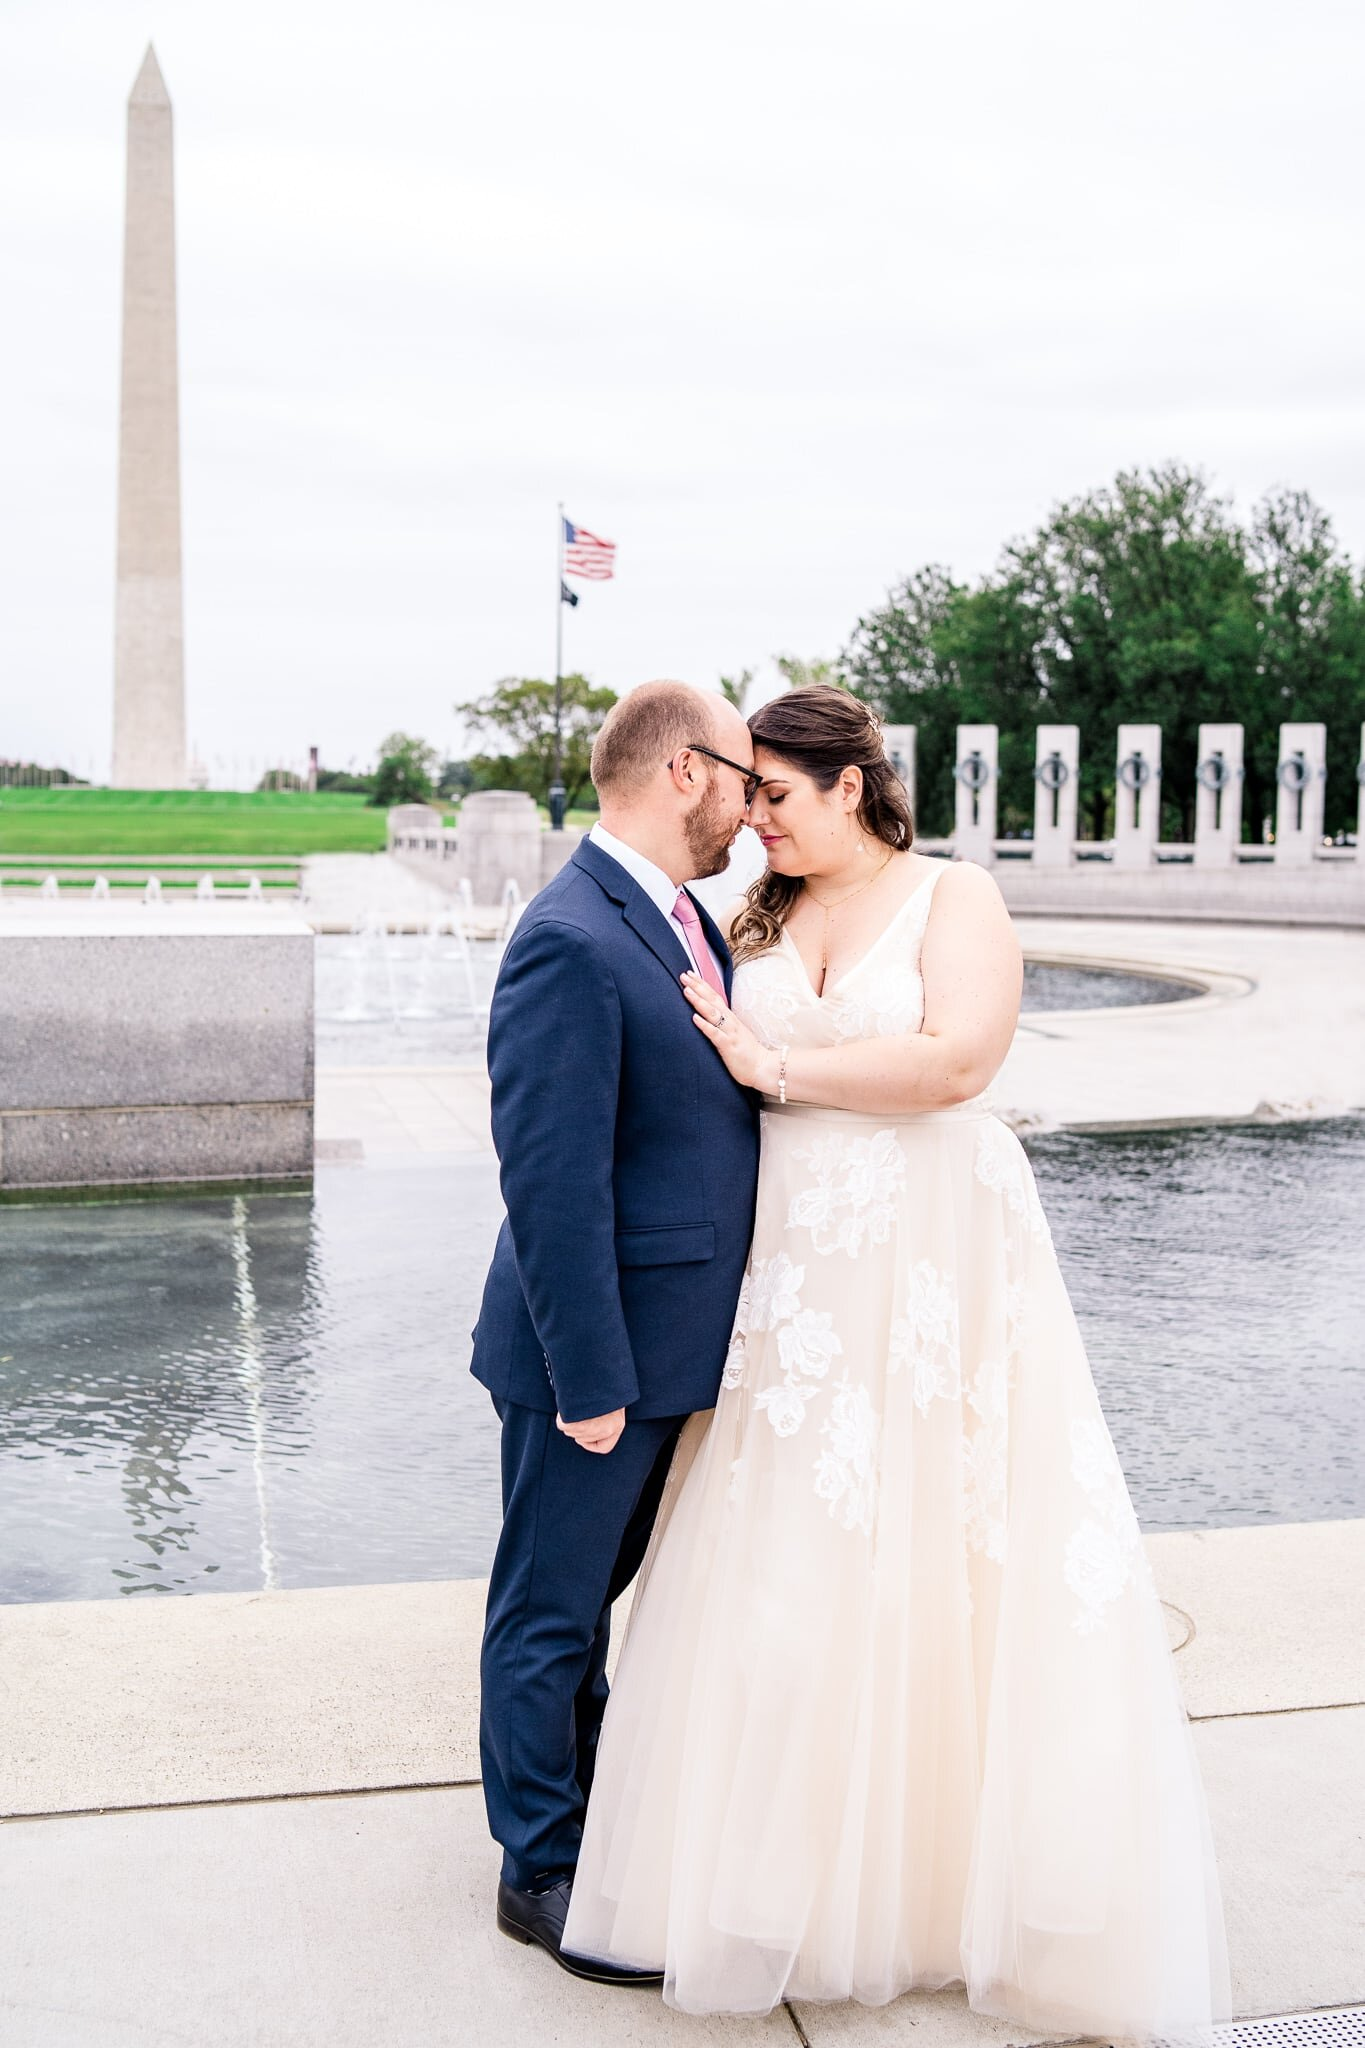 A bride and groom stand together with foreheads together on their fall wedding day at the WWII Memorial in front of the Washington Monument in Washington, DC